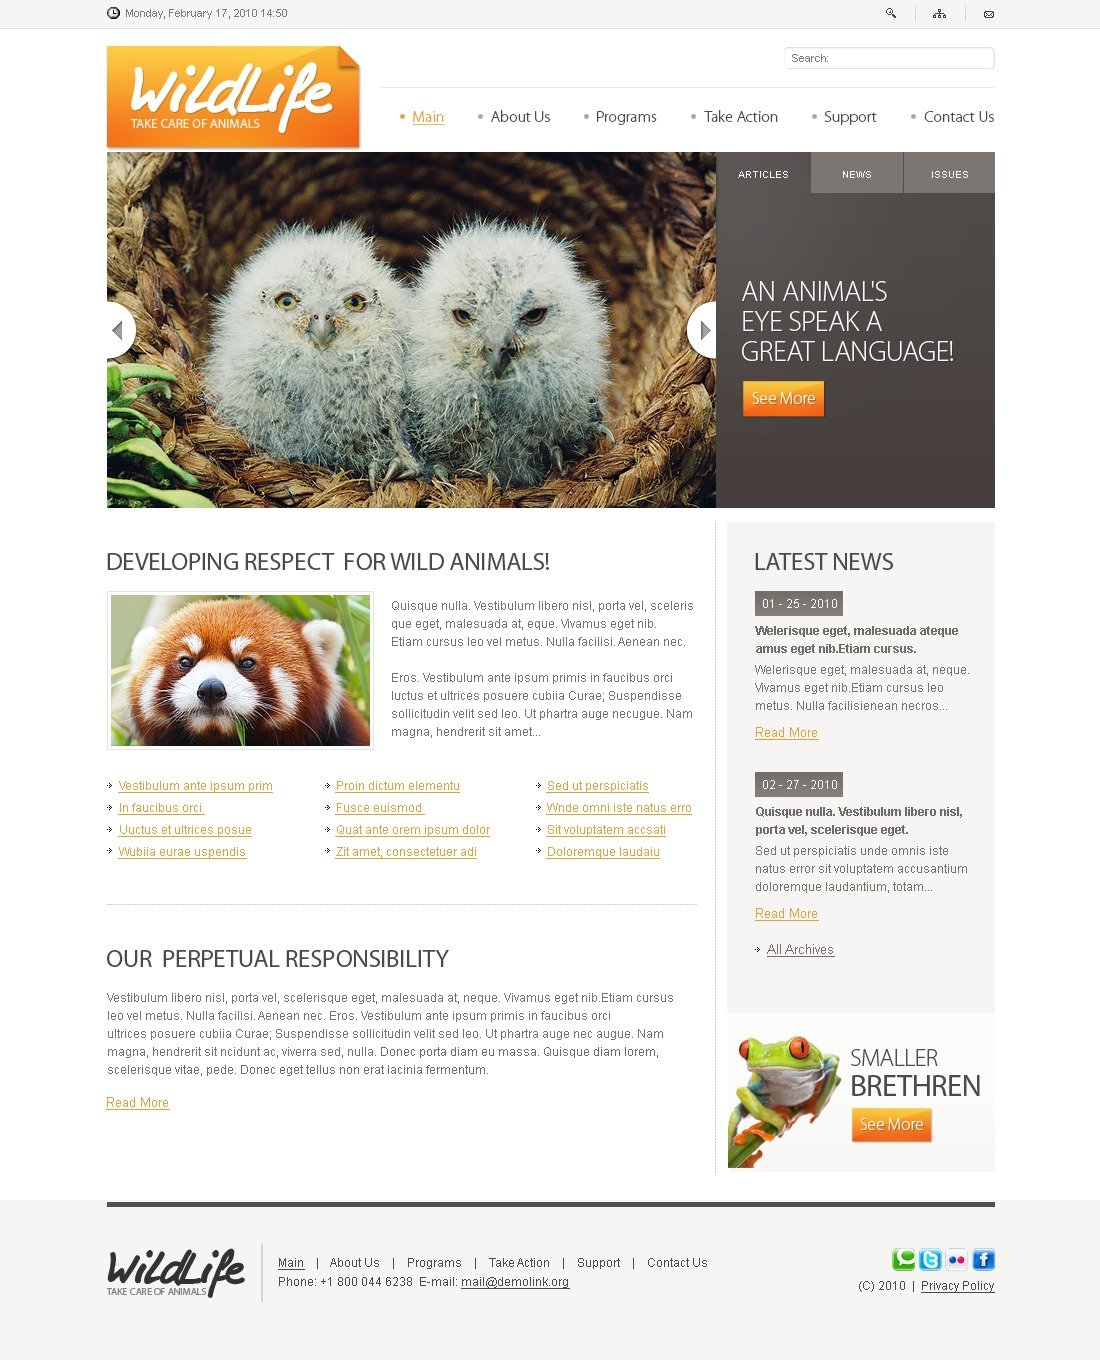 The Wild Life PSD Design 54158, one of the best PSD templates of its kind (animals & pets, flash 8, wide), also known as wild life PSD template, animals PSD template, fund PSD template, life PSD template, nature PSD template, wildlife PSD template, photos PSD template, gallery PSD template, events PSD template, archive PSD template, links PSD template, individuality PSD template, guestbook PSD template, journal PSD template, visitors PSD template, opinion PSD template, discussion blogroll PSD template, nature PSD template, environment PSD template, ecology PSD template, roe PSD template, deer PSD template, tiger PSD template, stork PSD template, pigeon PSD template, dolphin PSD template, lion PSD template, lynx PSD template, bobcat PSD template, relief PSD template, fund PSD template, preservation PSD template, w and related with wild life, animals, fund, life, nature, wildlife, photos, gallery, events, archive, links, individuality, guestbook, journal, visitors, opinion, discussion blogroll, nature, environment, ecology, roe, deer, tiger, stork, pigeon, dolphin, lion, lynx, bobcat, relief, fund, preservation, w, etc.